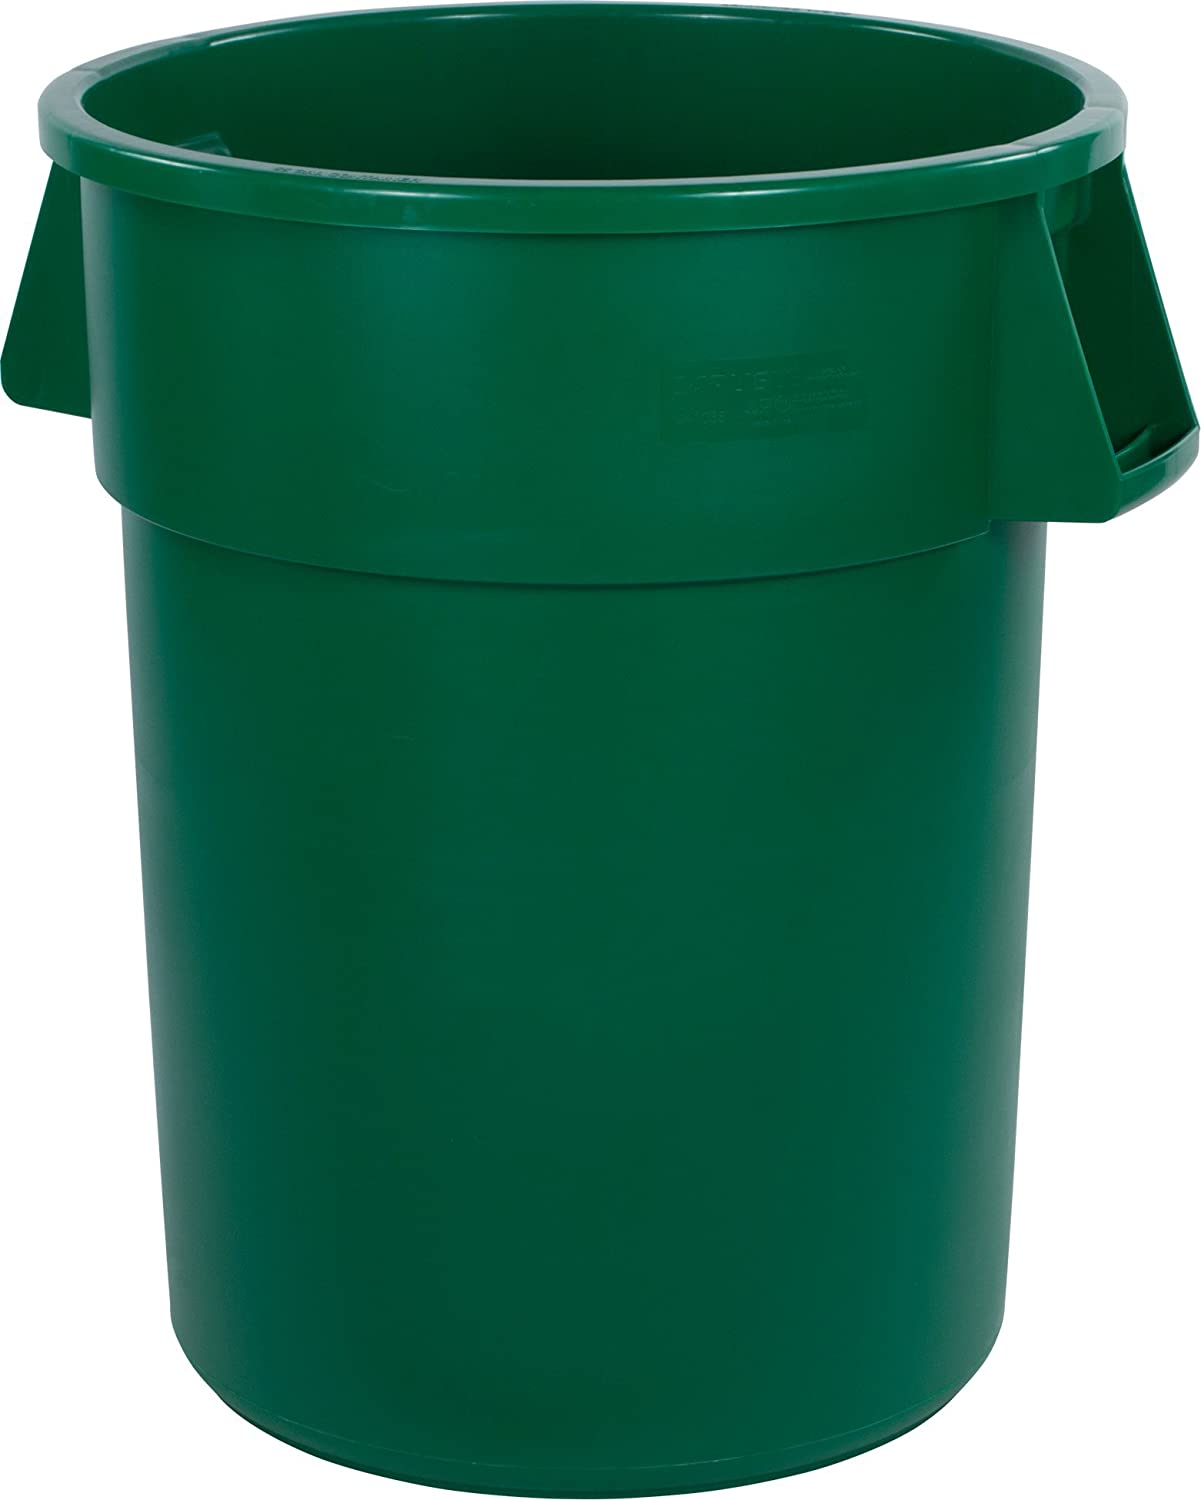 Carlisle 34101004 Bronco Round Waste Container Only, 10 Gallon, Yellow Carlisle Corporation